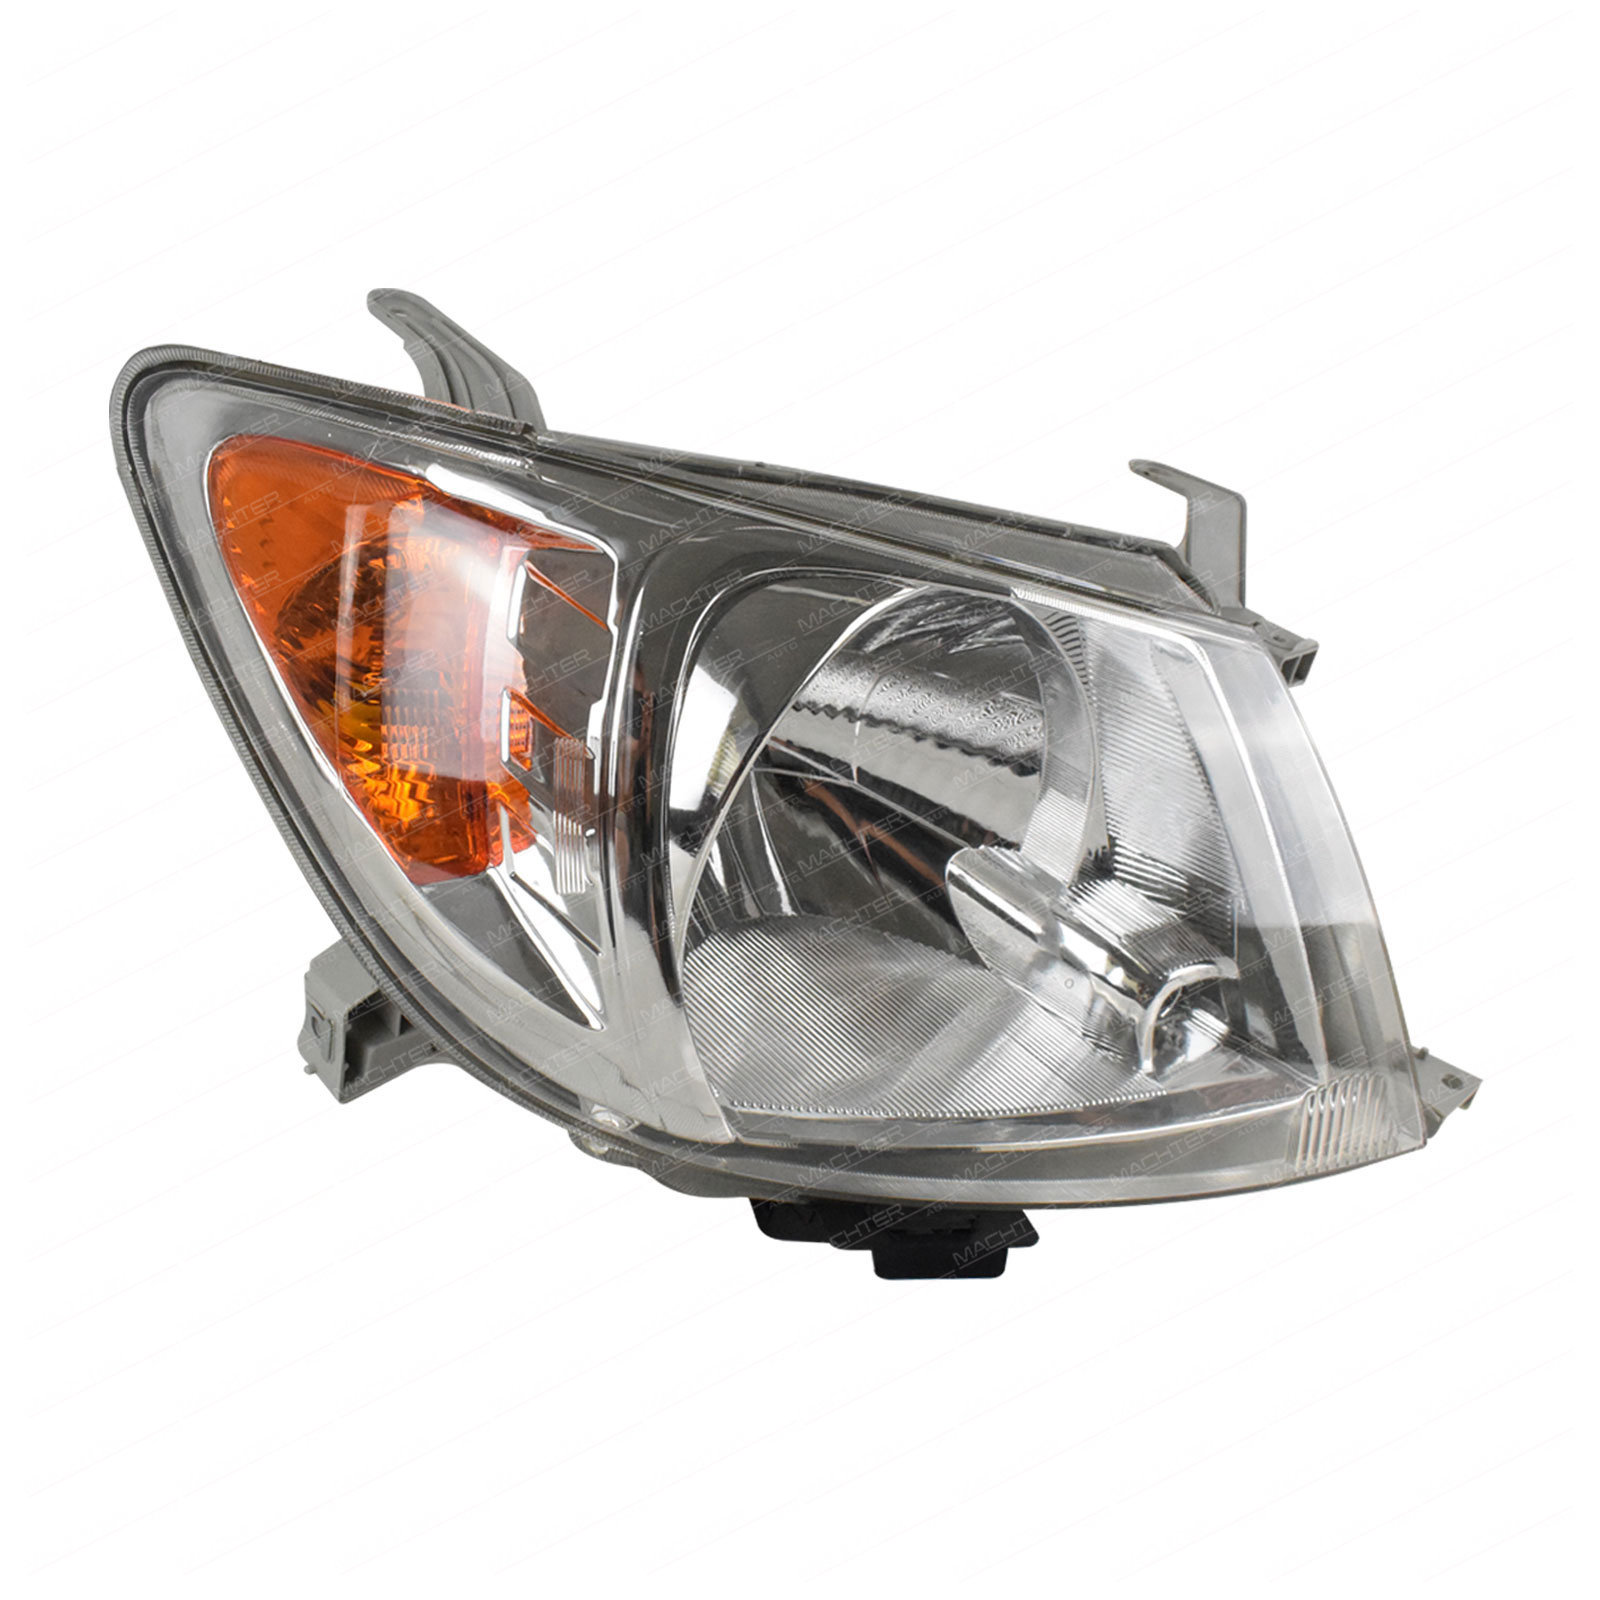 Head Light Fit For Toyota Hilux 2005-2008 (Right Hand Side) image